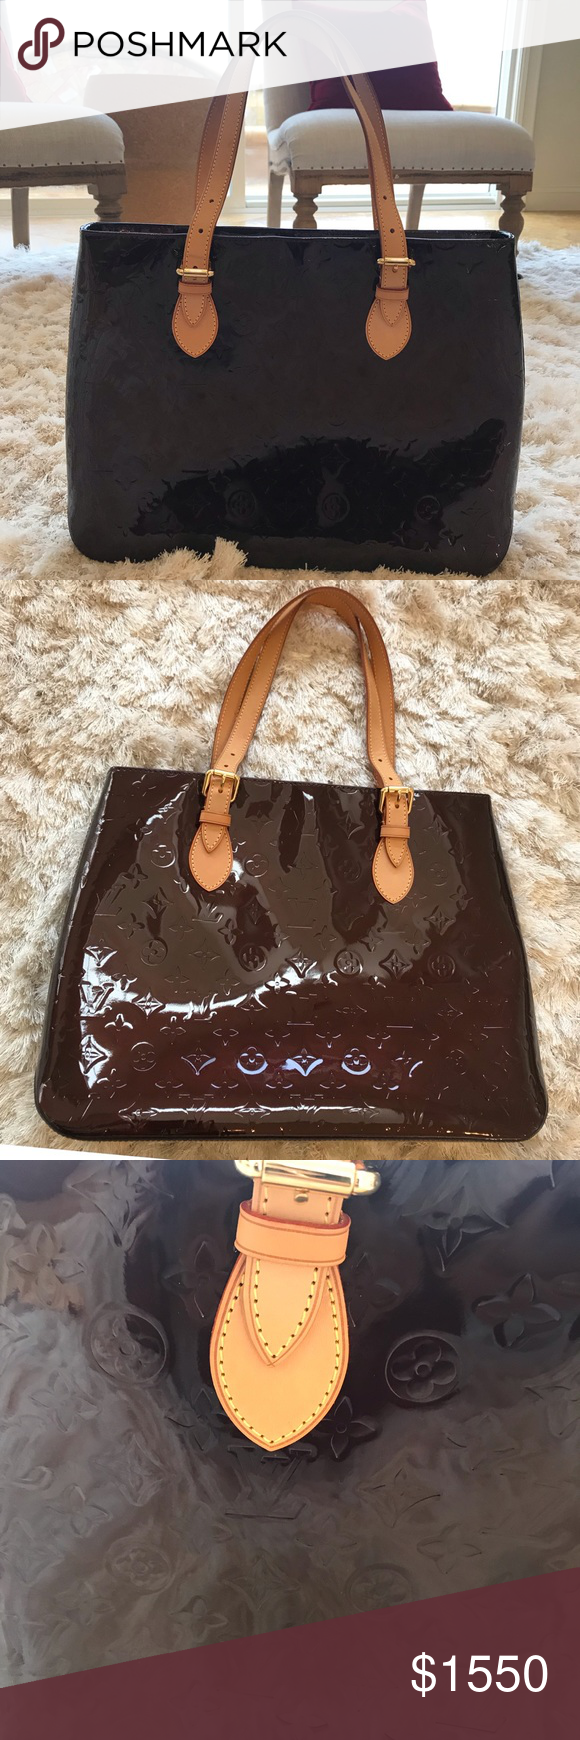 93ef487ee7e6 Spotted while shopping on Poshmark  LV Louis Vuitton Vernis Brentwood  Monogram Bag!  poshmark  fashion  shopping  style  Louis Vuitton  Handbags